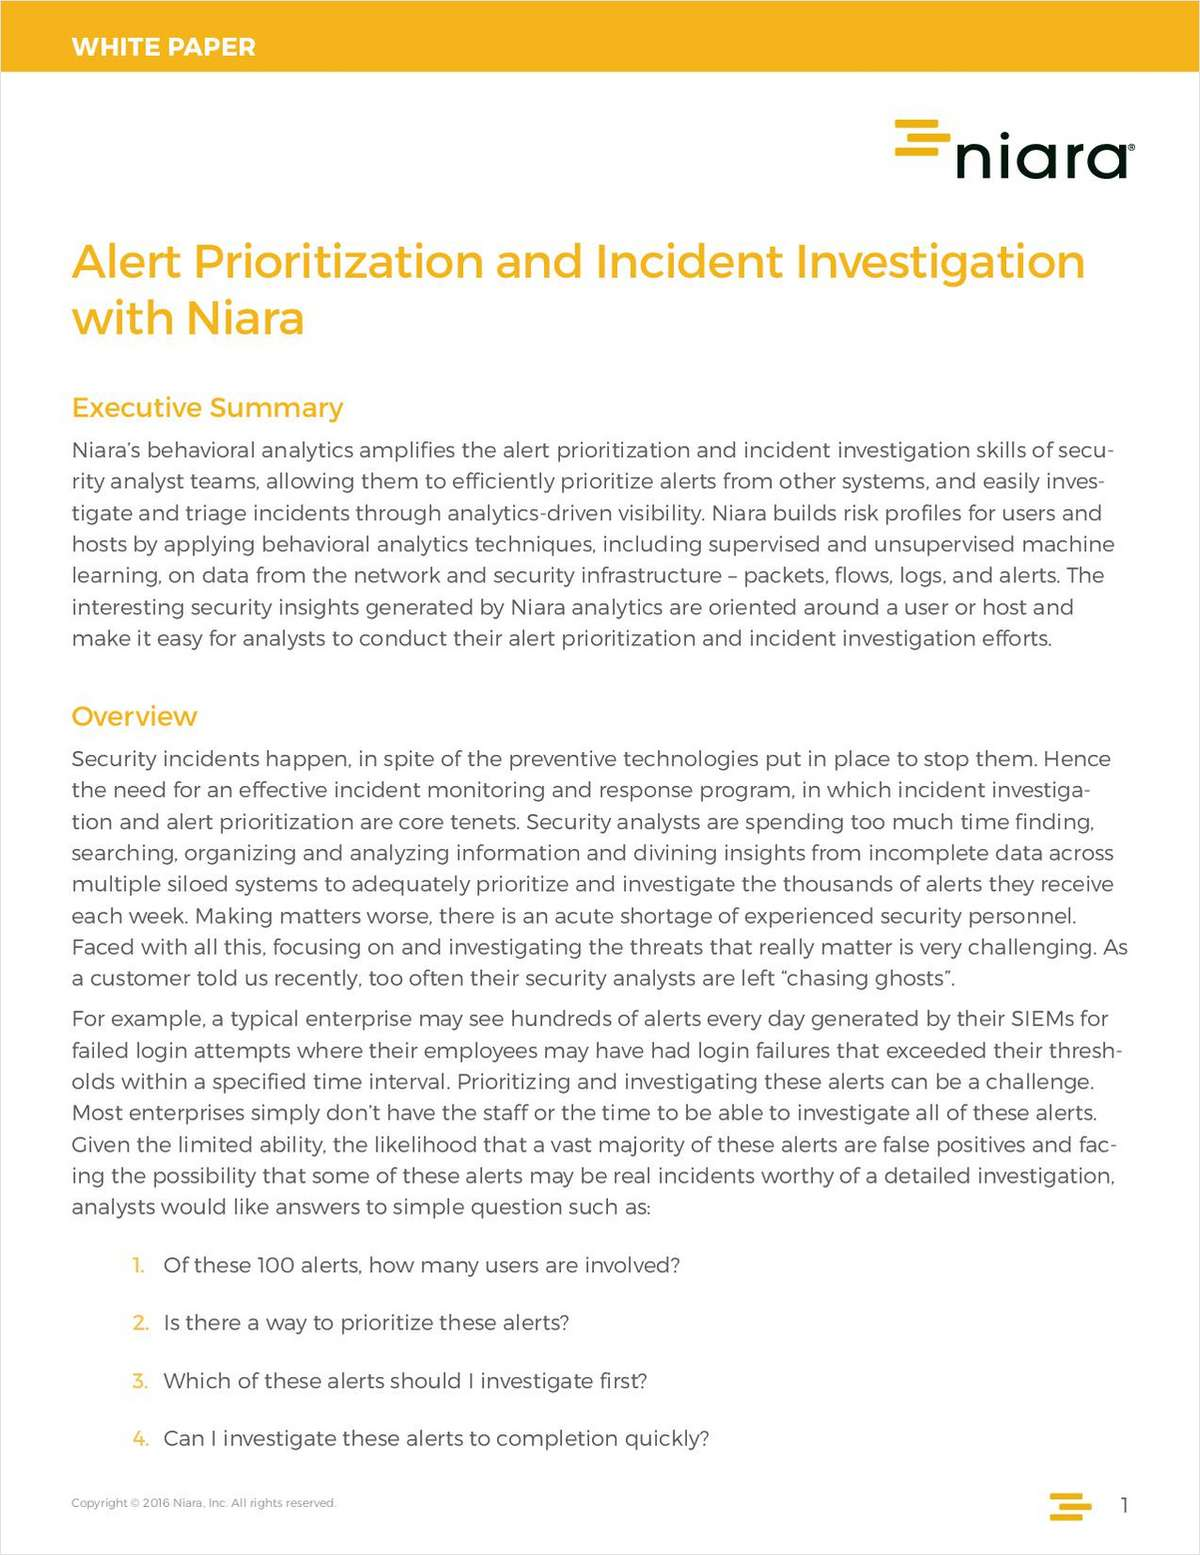 Alert Prioritization and Incident Investigation